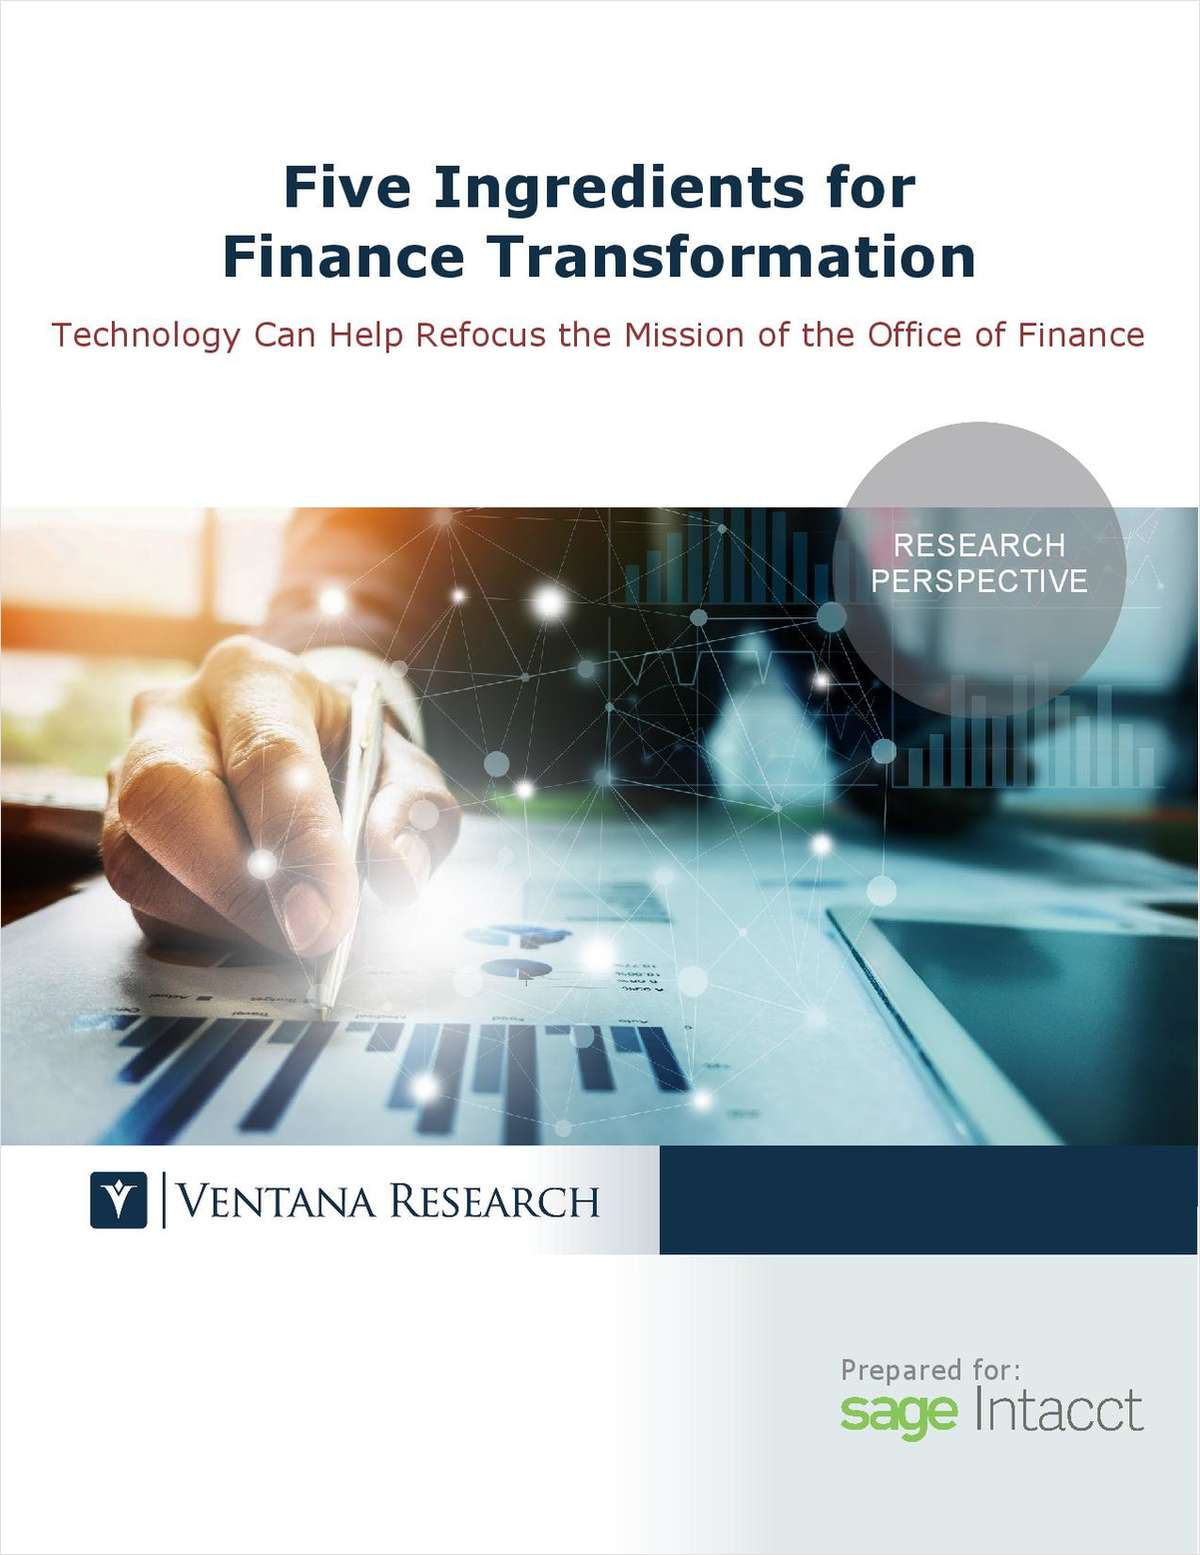 Five Ingredients for Finance Transformation